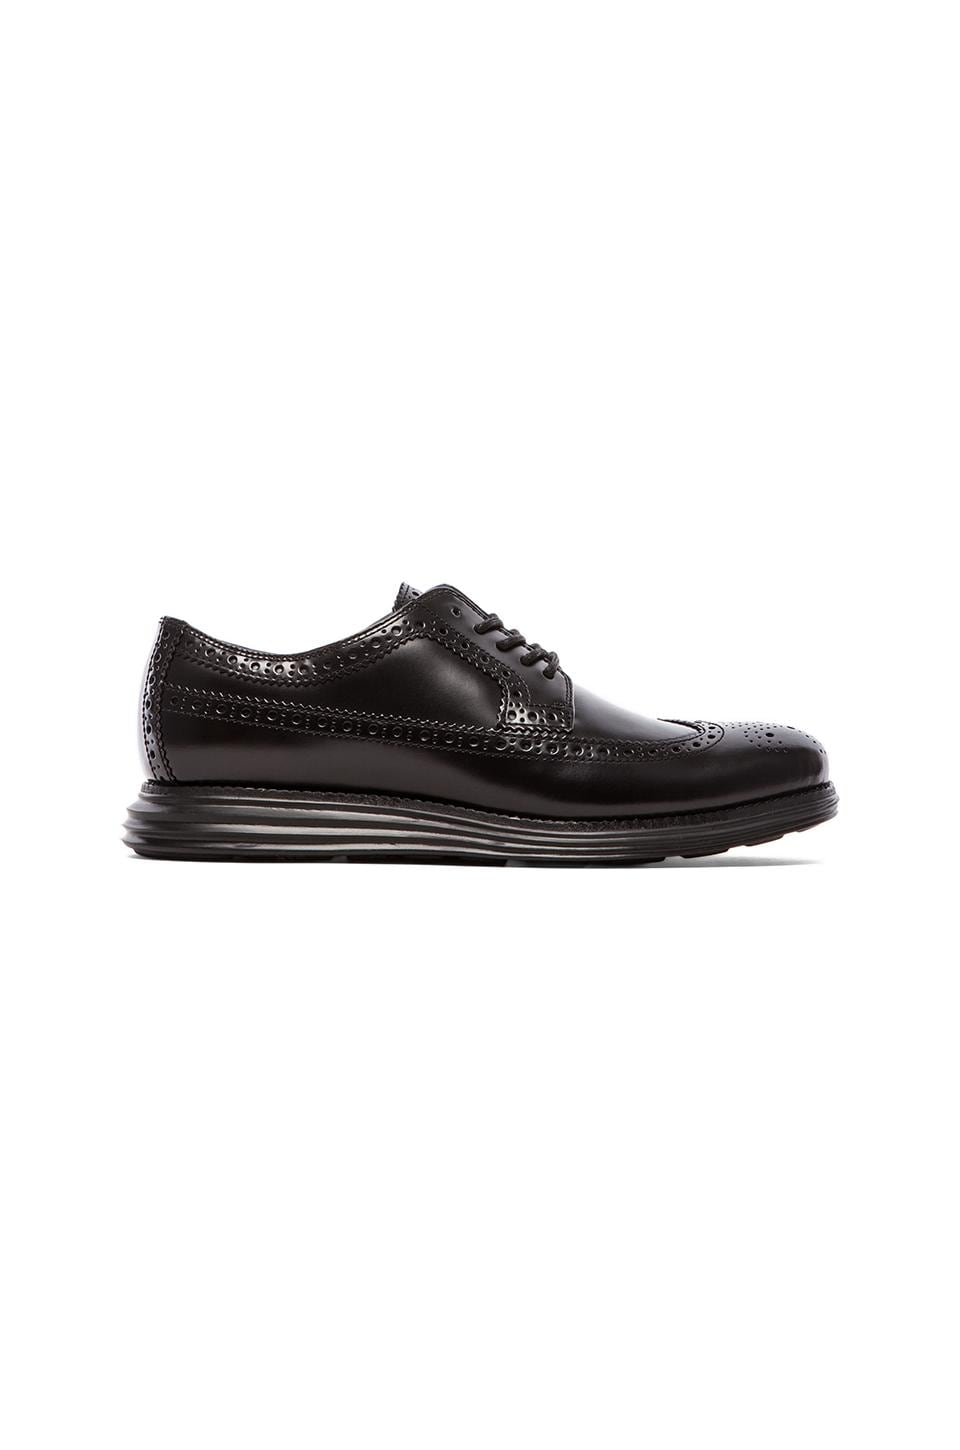 Cole Haan Lunargrand Oxford in Black & Black